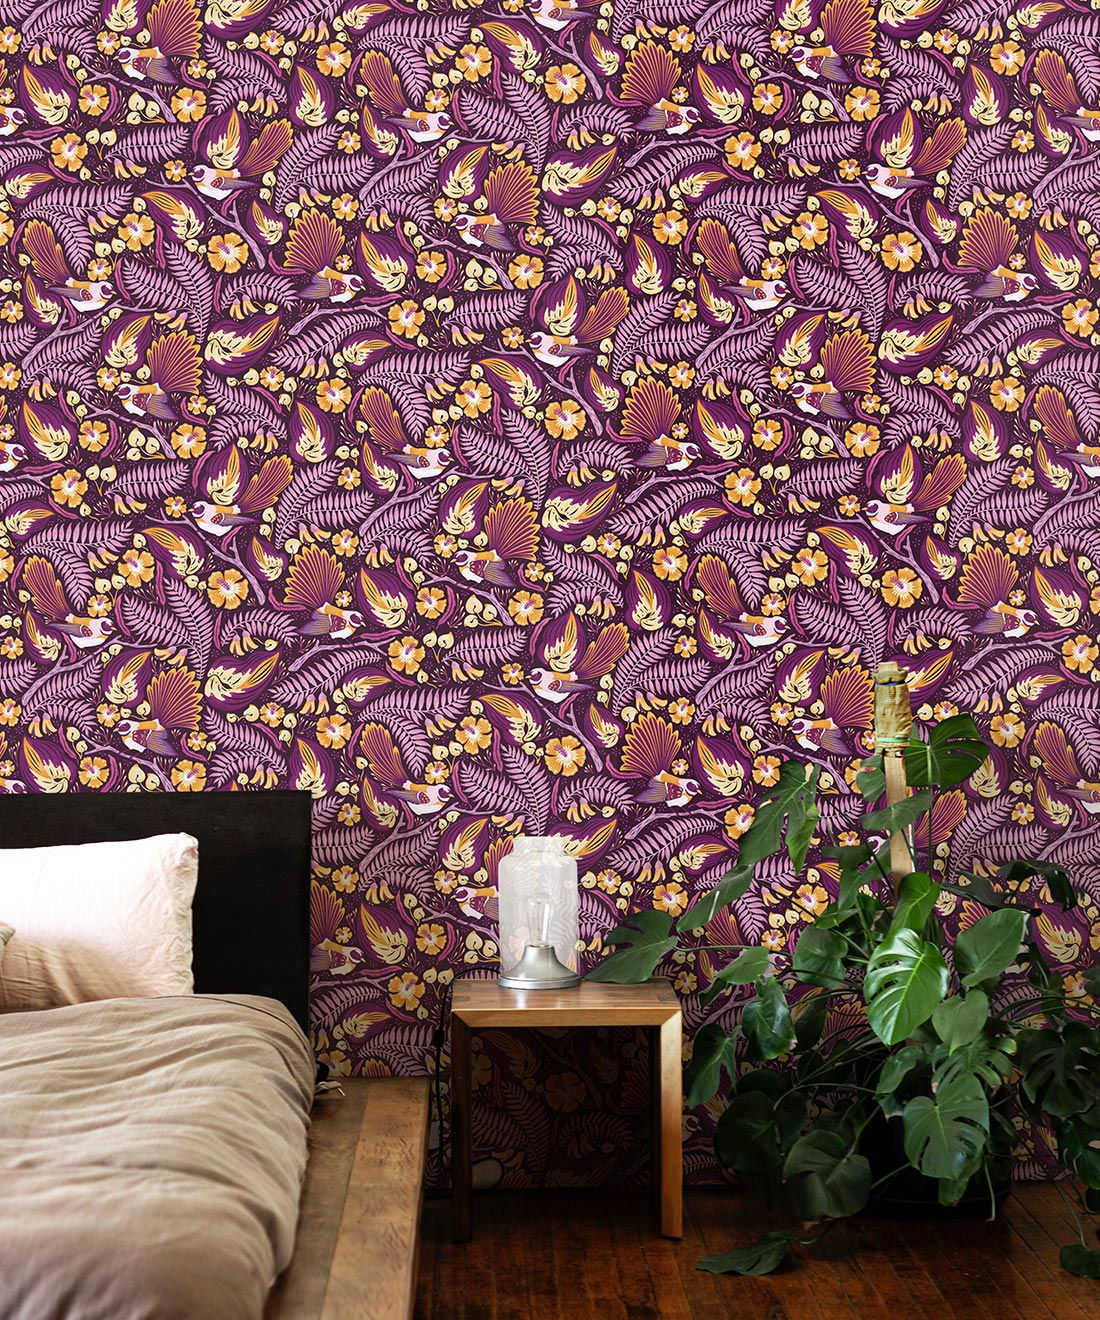 Faintails Wallpaper • New Zealand • Bird Wallpaper • Kowhai Tree • Kowhai Flowers • Purple Wallpaper • Insitu